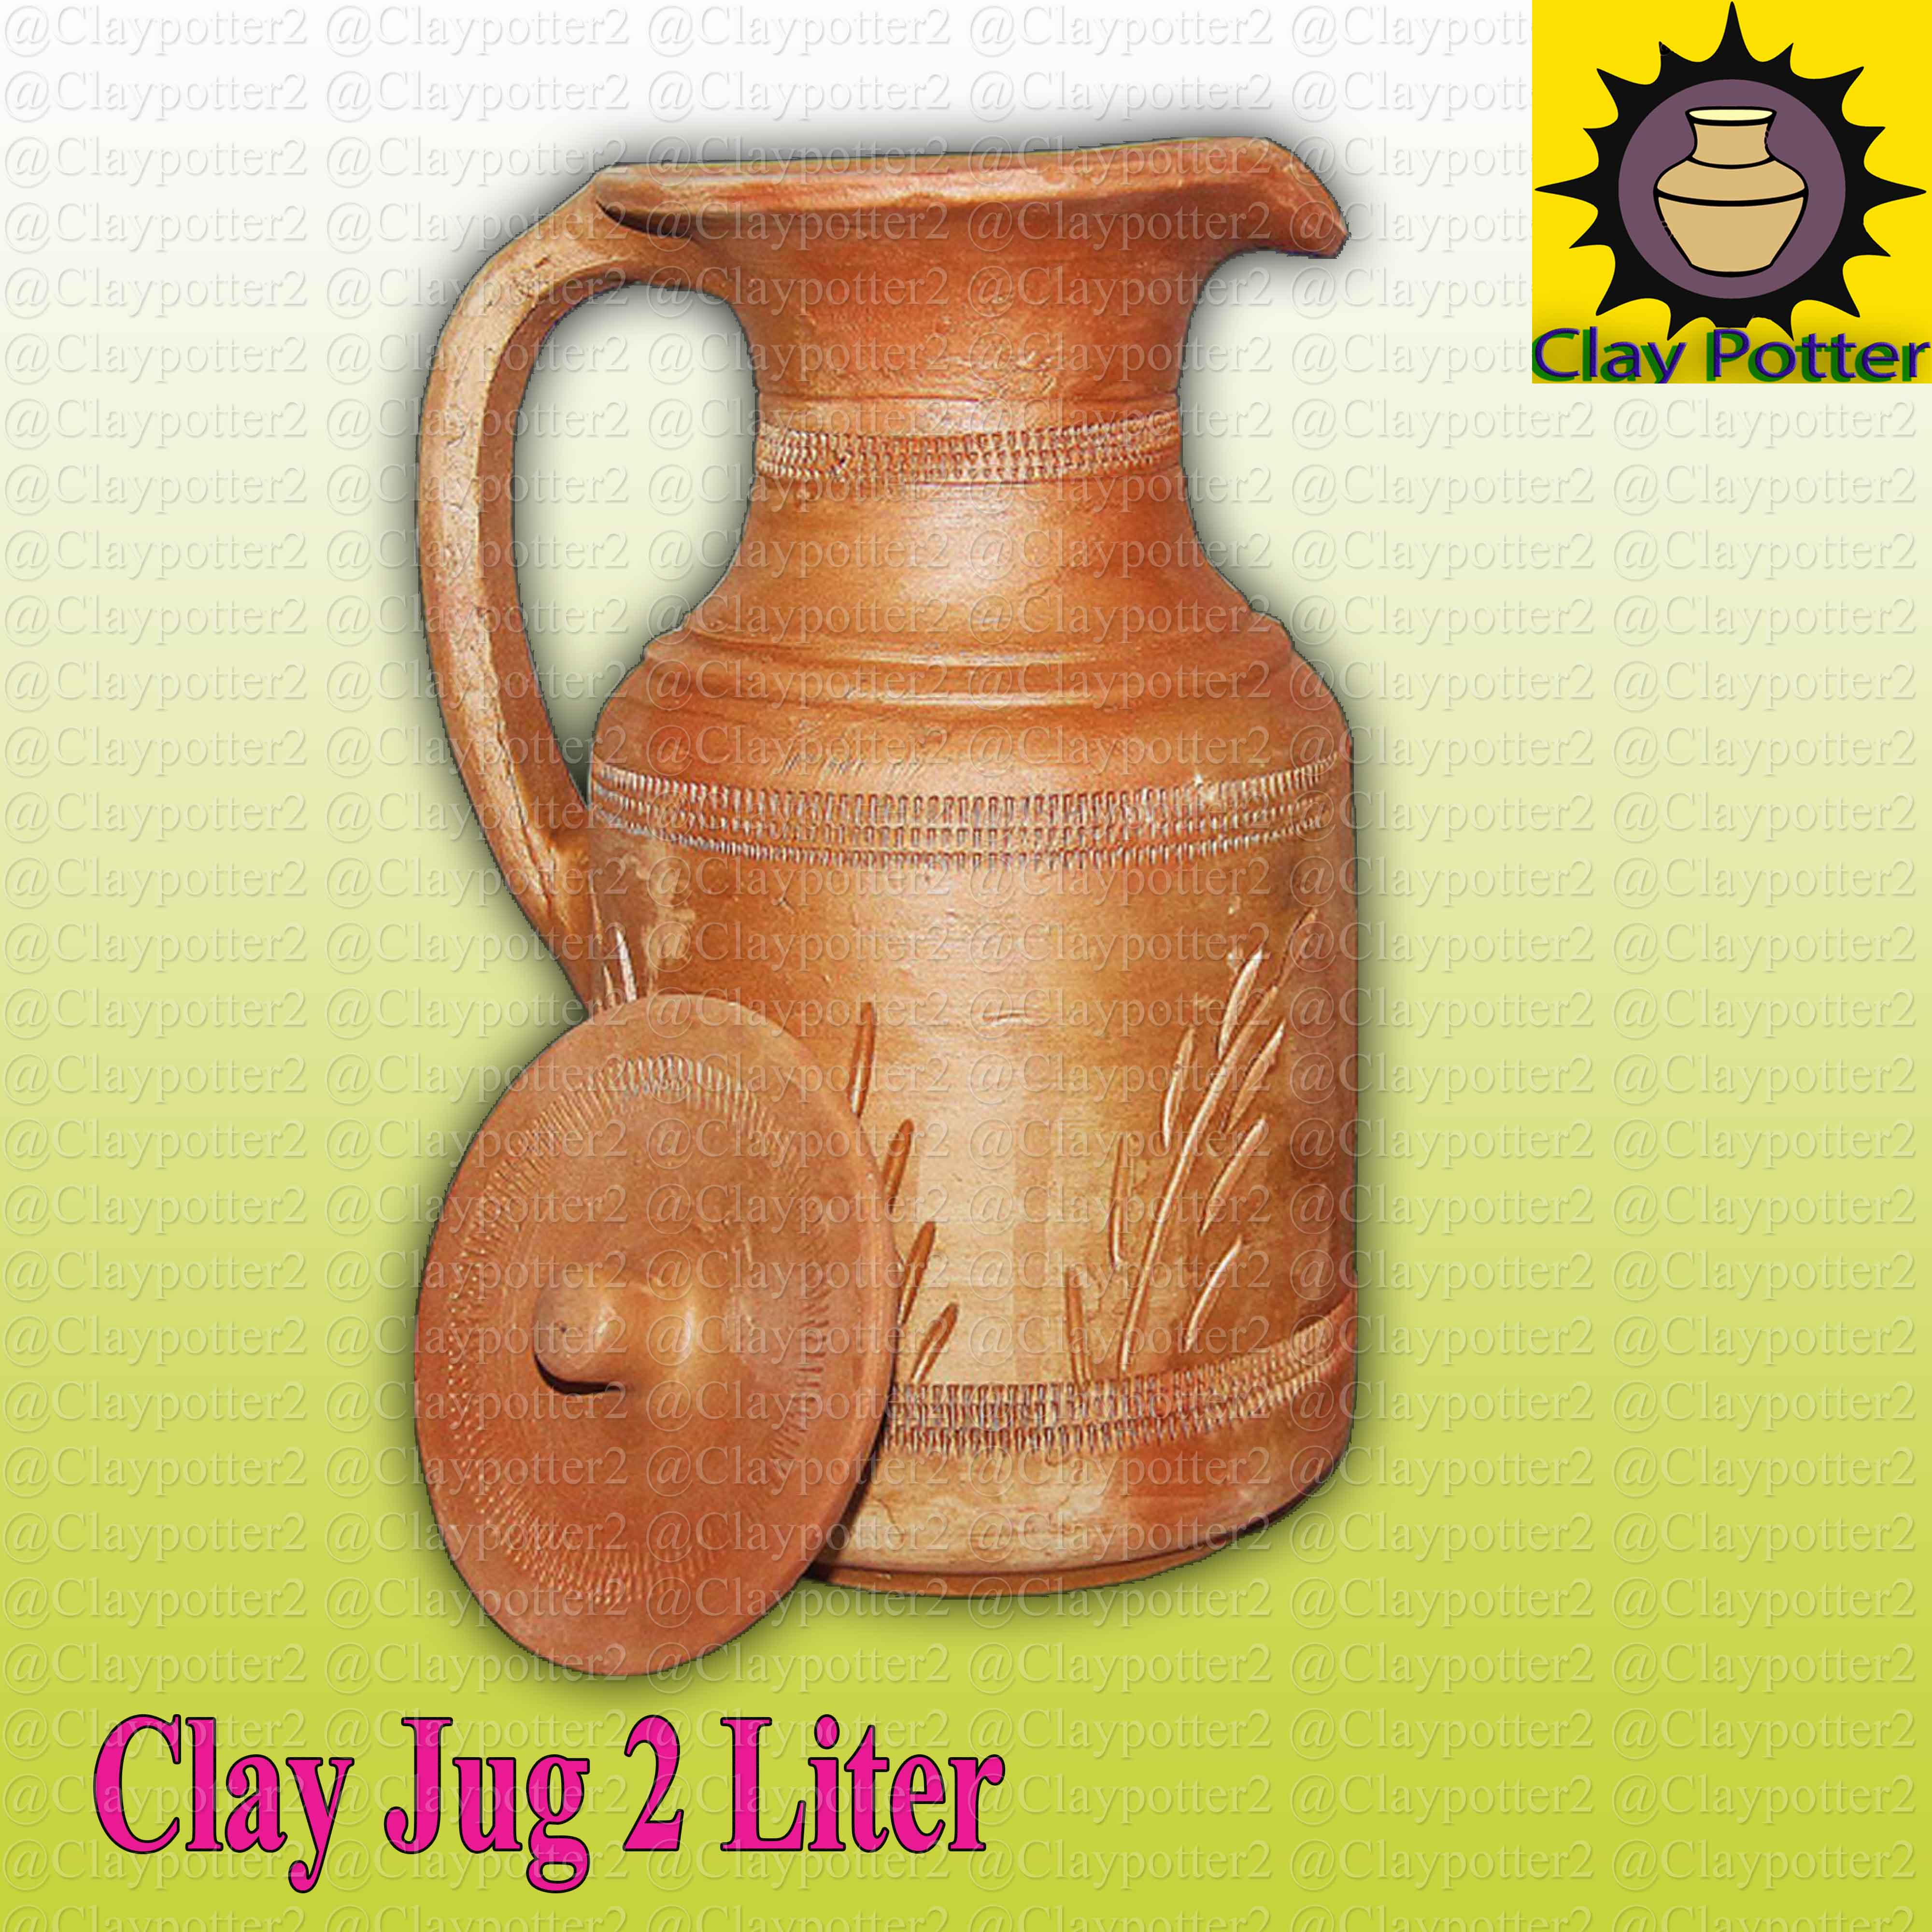 Clay Jug with Cap Plus 2 Piece Glass Offer Handmade Natural Clay Cold Water Size Mention Clay Potter